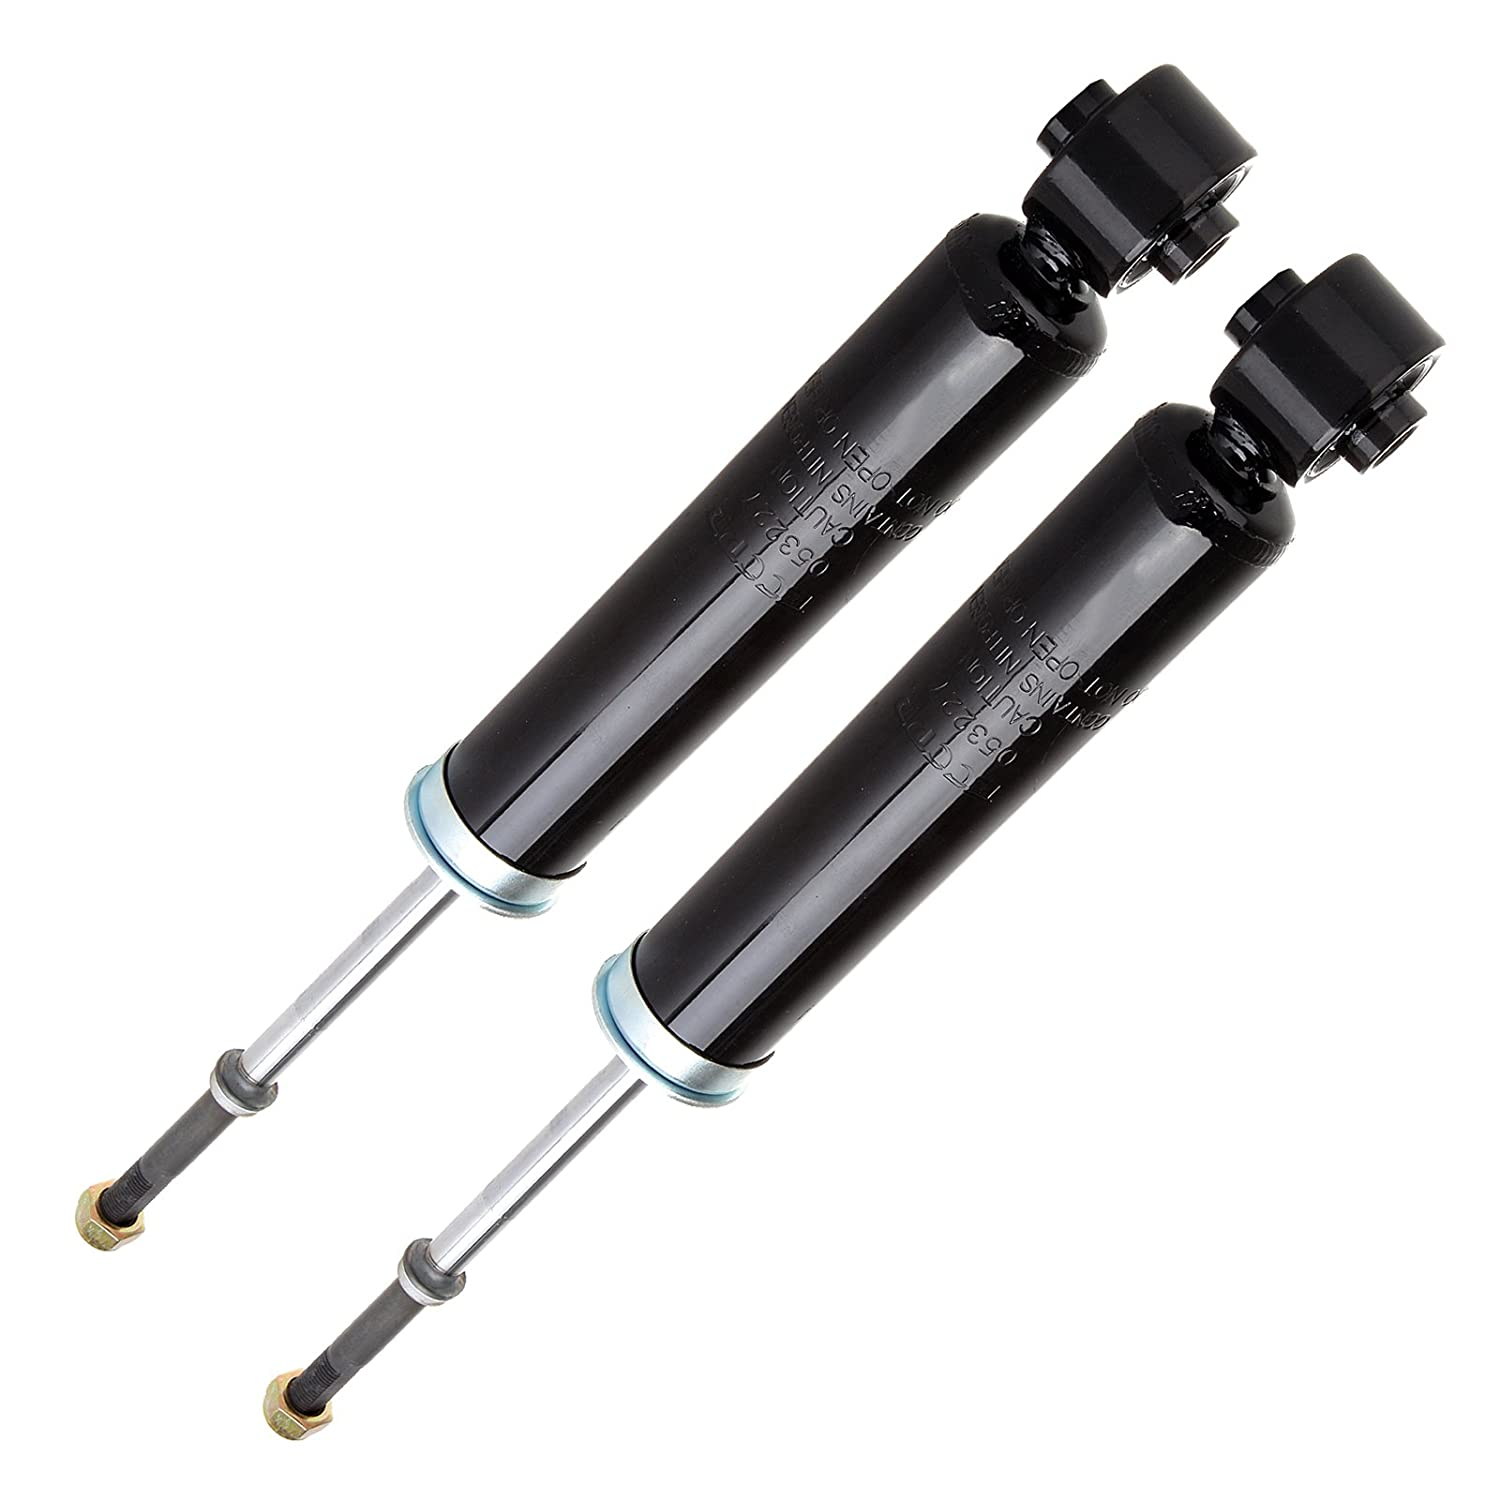 Rear Gas Struts Shock Absorbers Fit for 2004 2005 2006 2007 2008 2009 Nissan Quest 344479 37283 Set of 2 SCITOO Shocks